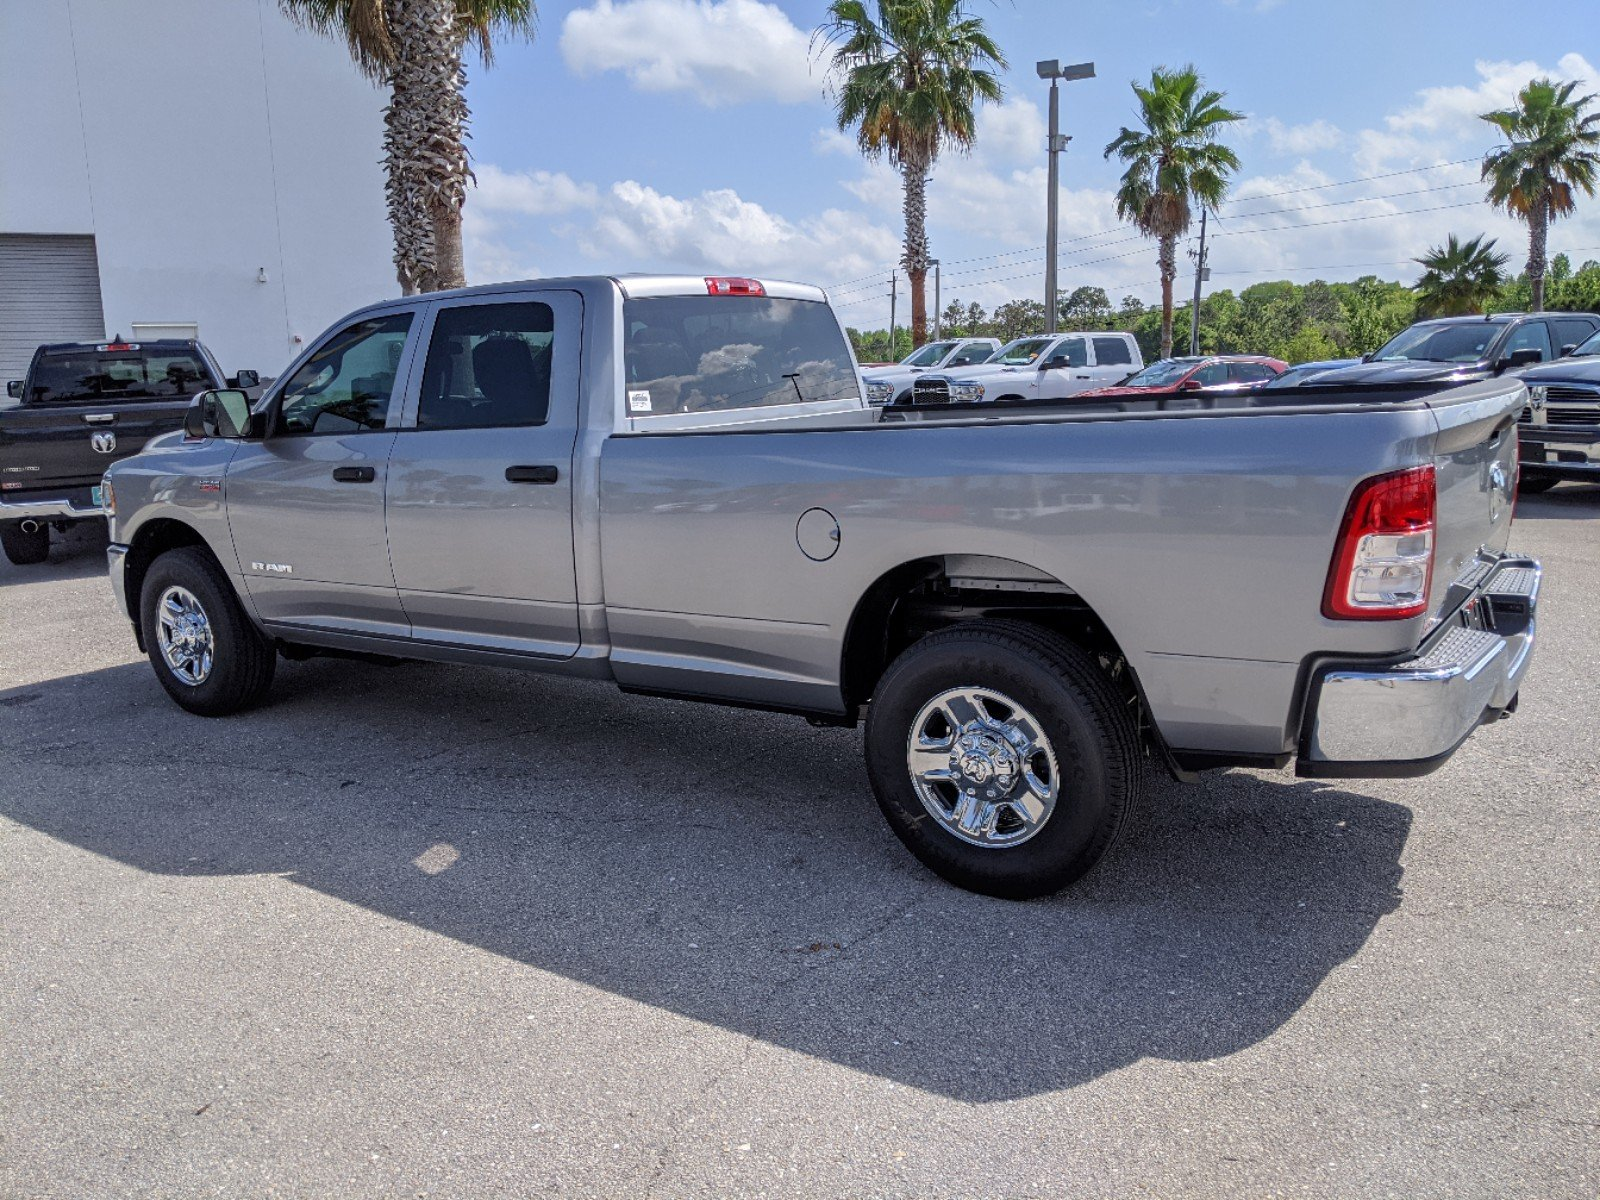 2020 Ram 2500 Crew Cab 4x2, Pickup #R20187 - photo 1